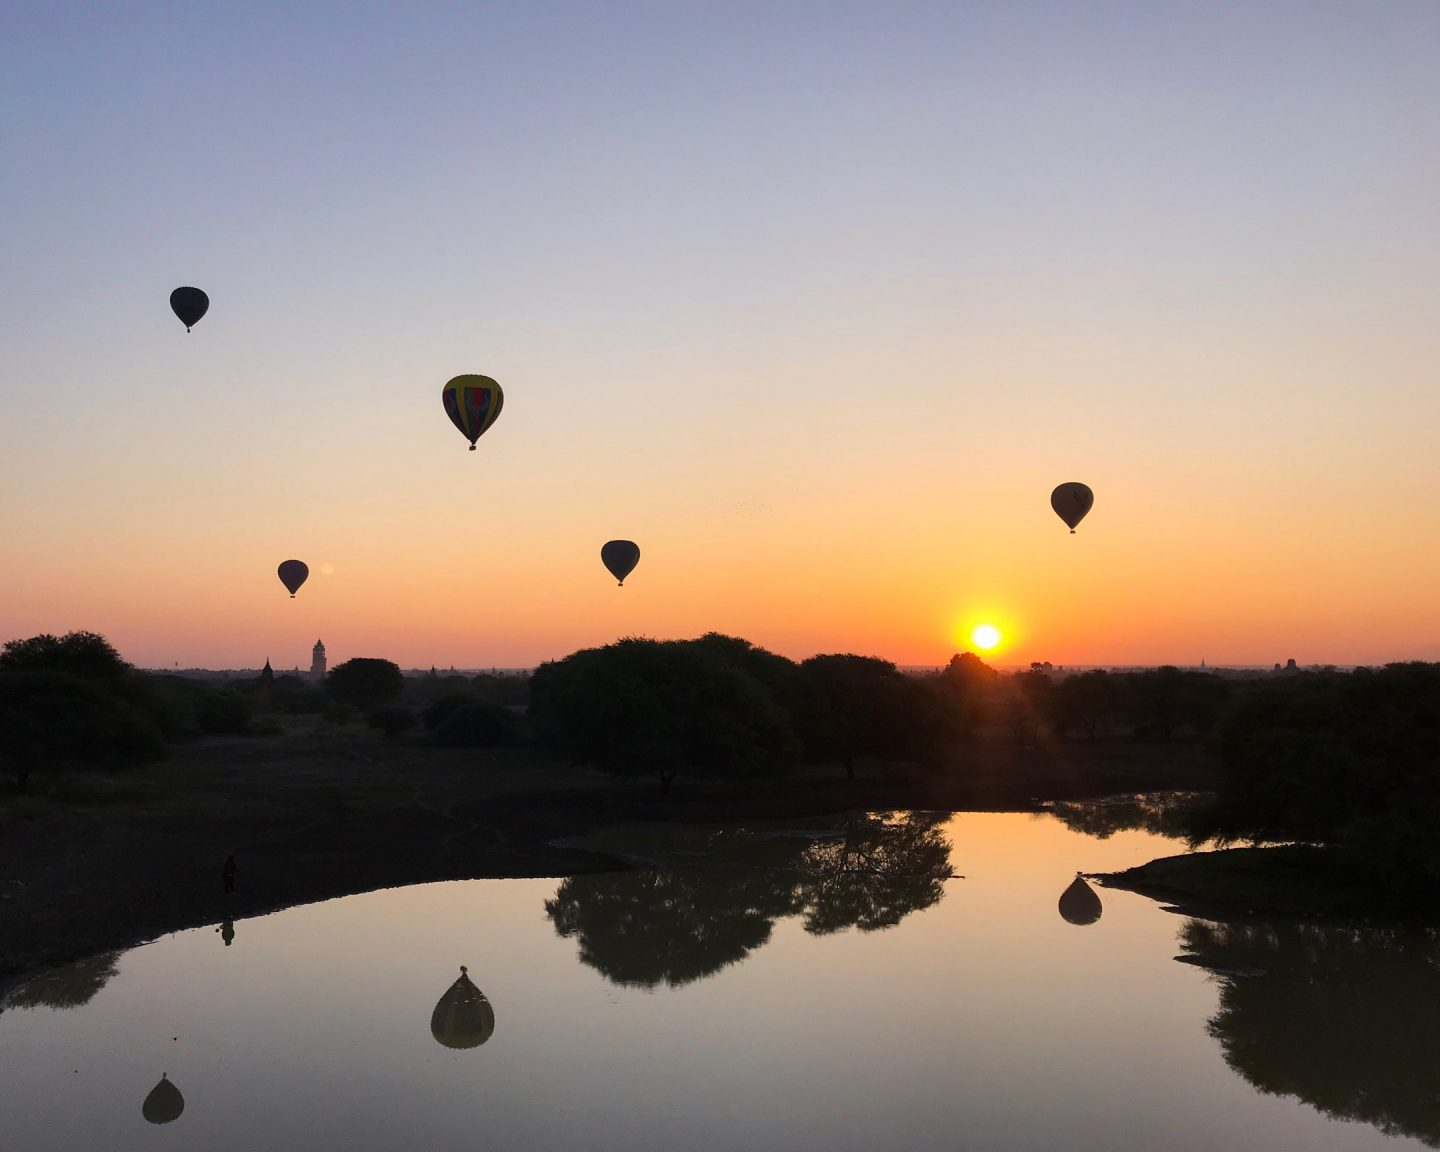 Balloons at Sunrise in Bagan